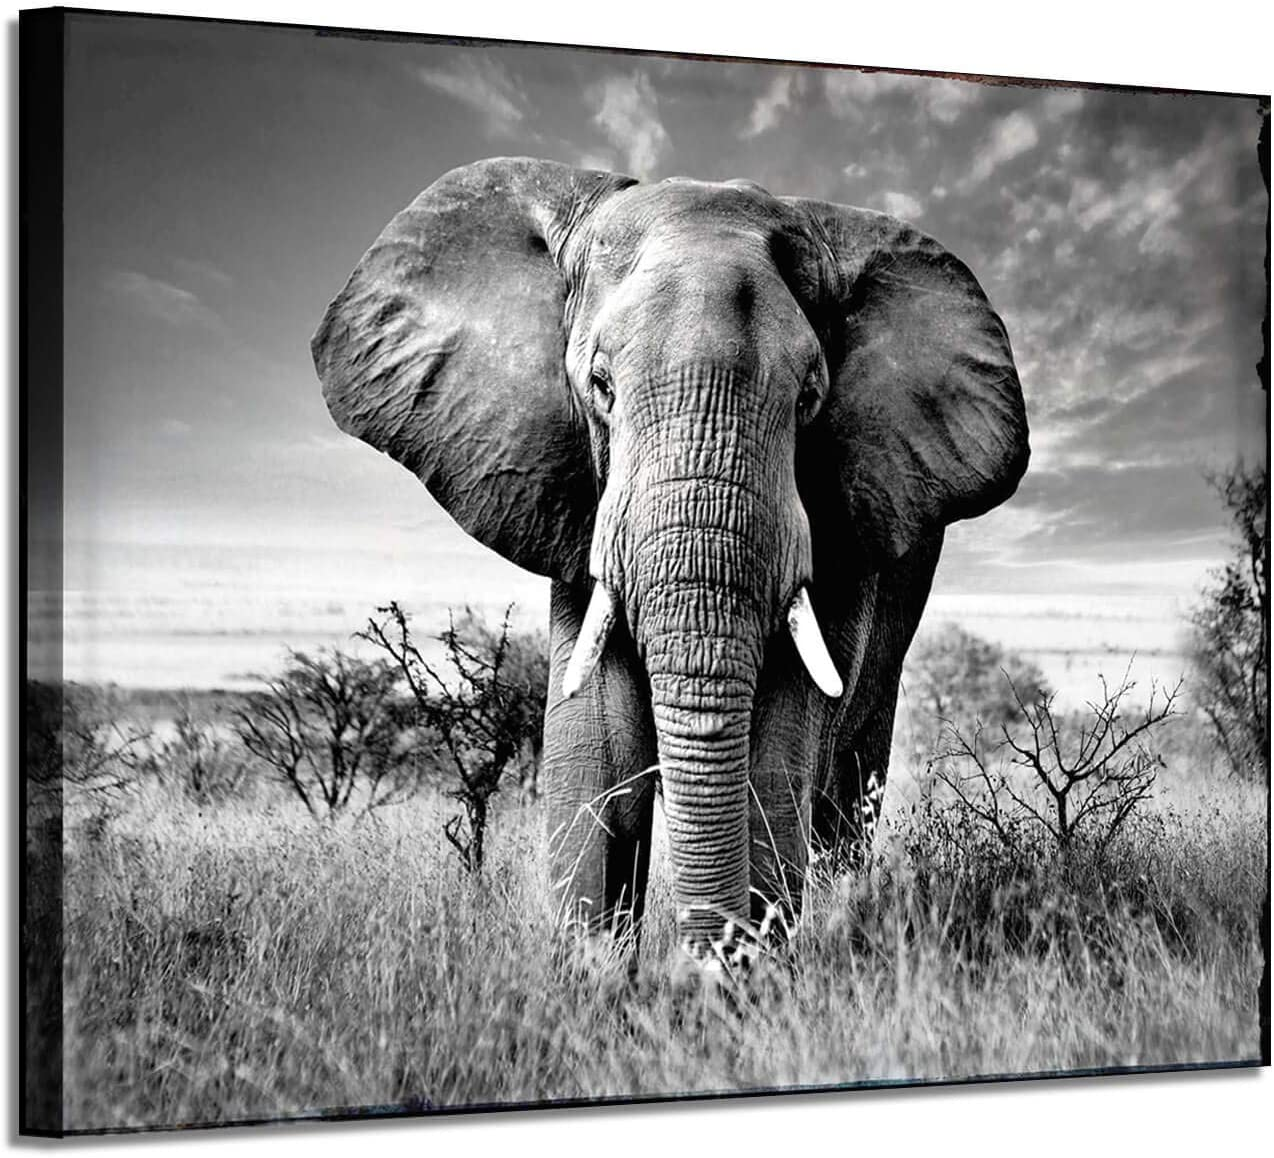 Elephant Picture Canvas Wall Art: African Wild Animals Artwork Painting Print for Living Room (36'' x 24'' x 1 Panel)